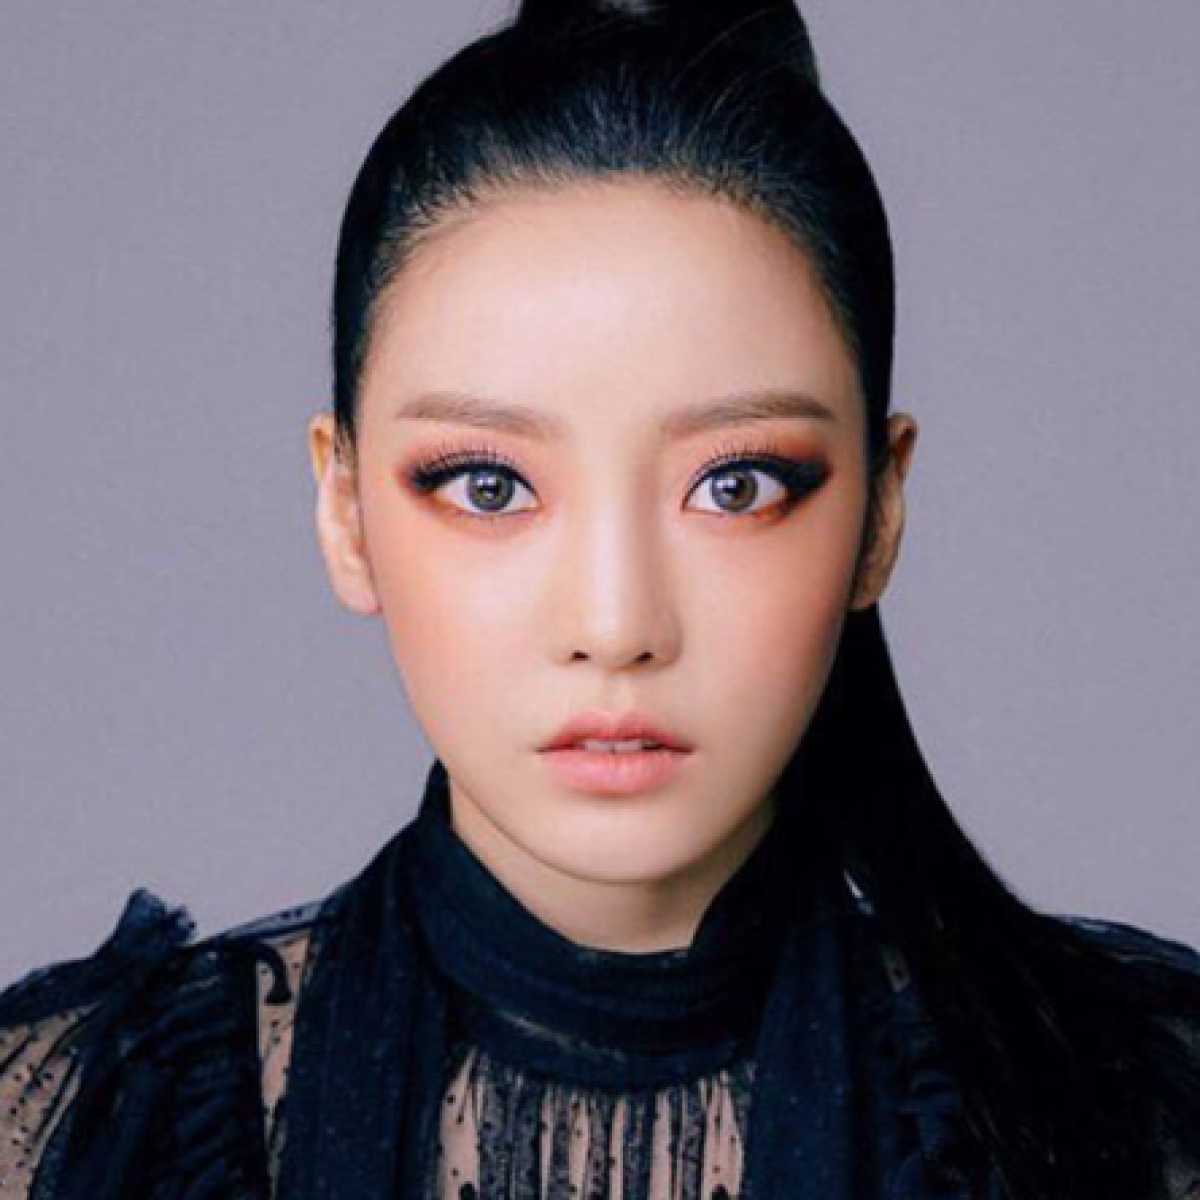 K-pop star Goo Hara's ex-boyfriend jailed for blackmailing her with sex videos leading to suicide